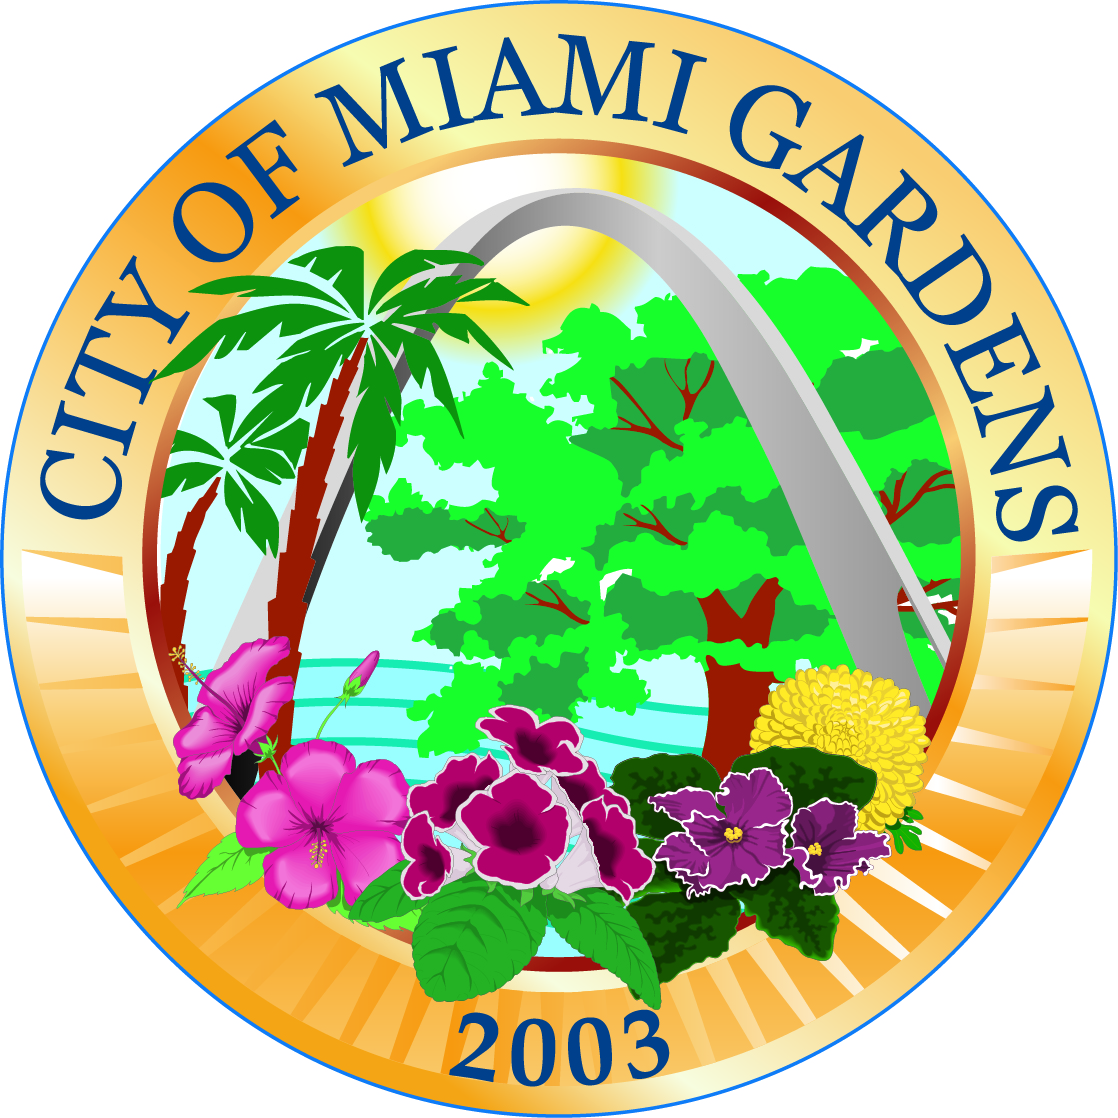 Miami Gardens, Florida Mailing Lists